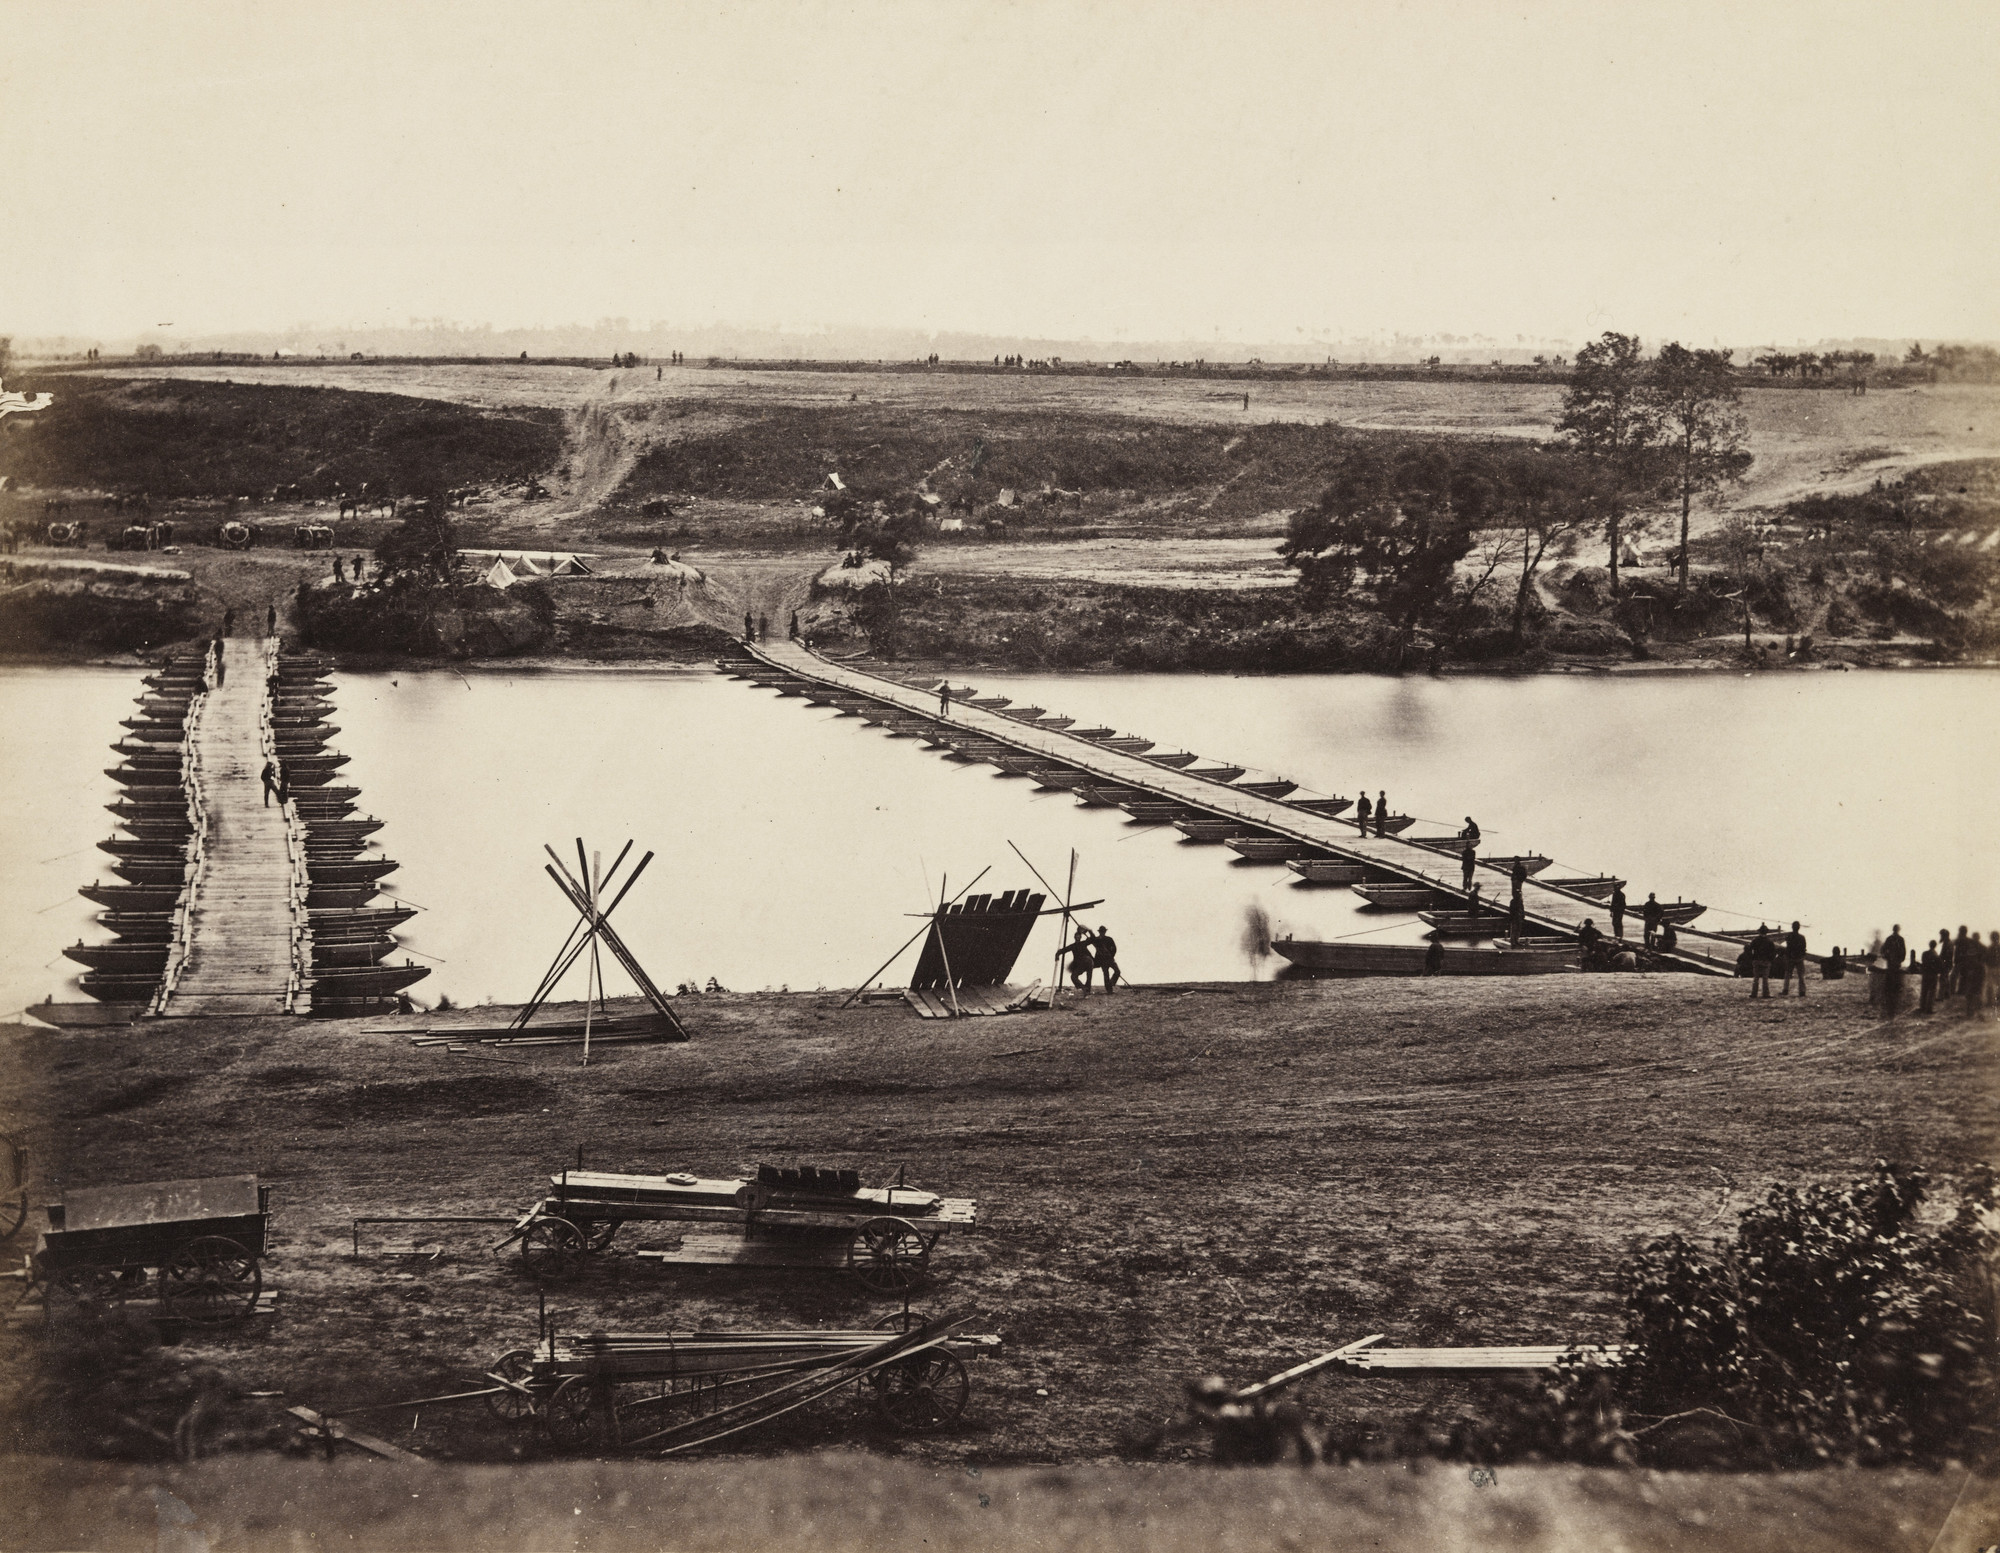 Alexander Gardner, Timothy O'Sullivan. Pontoon Bridge Across the Rappahannock. May 1863